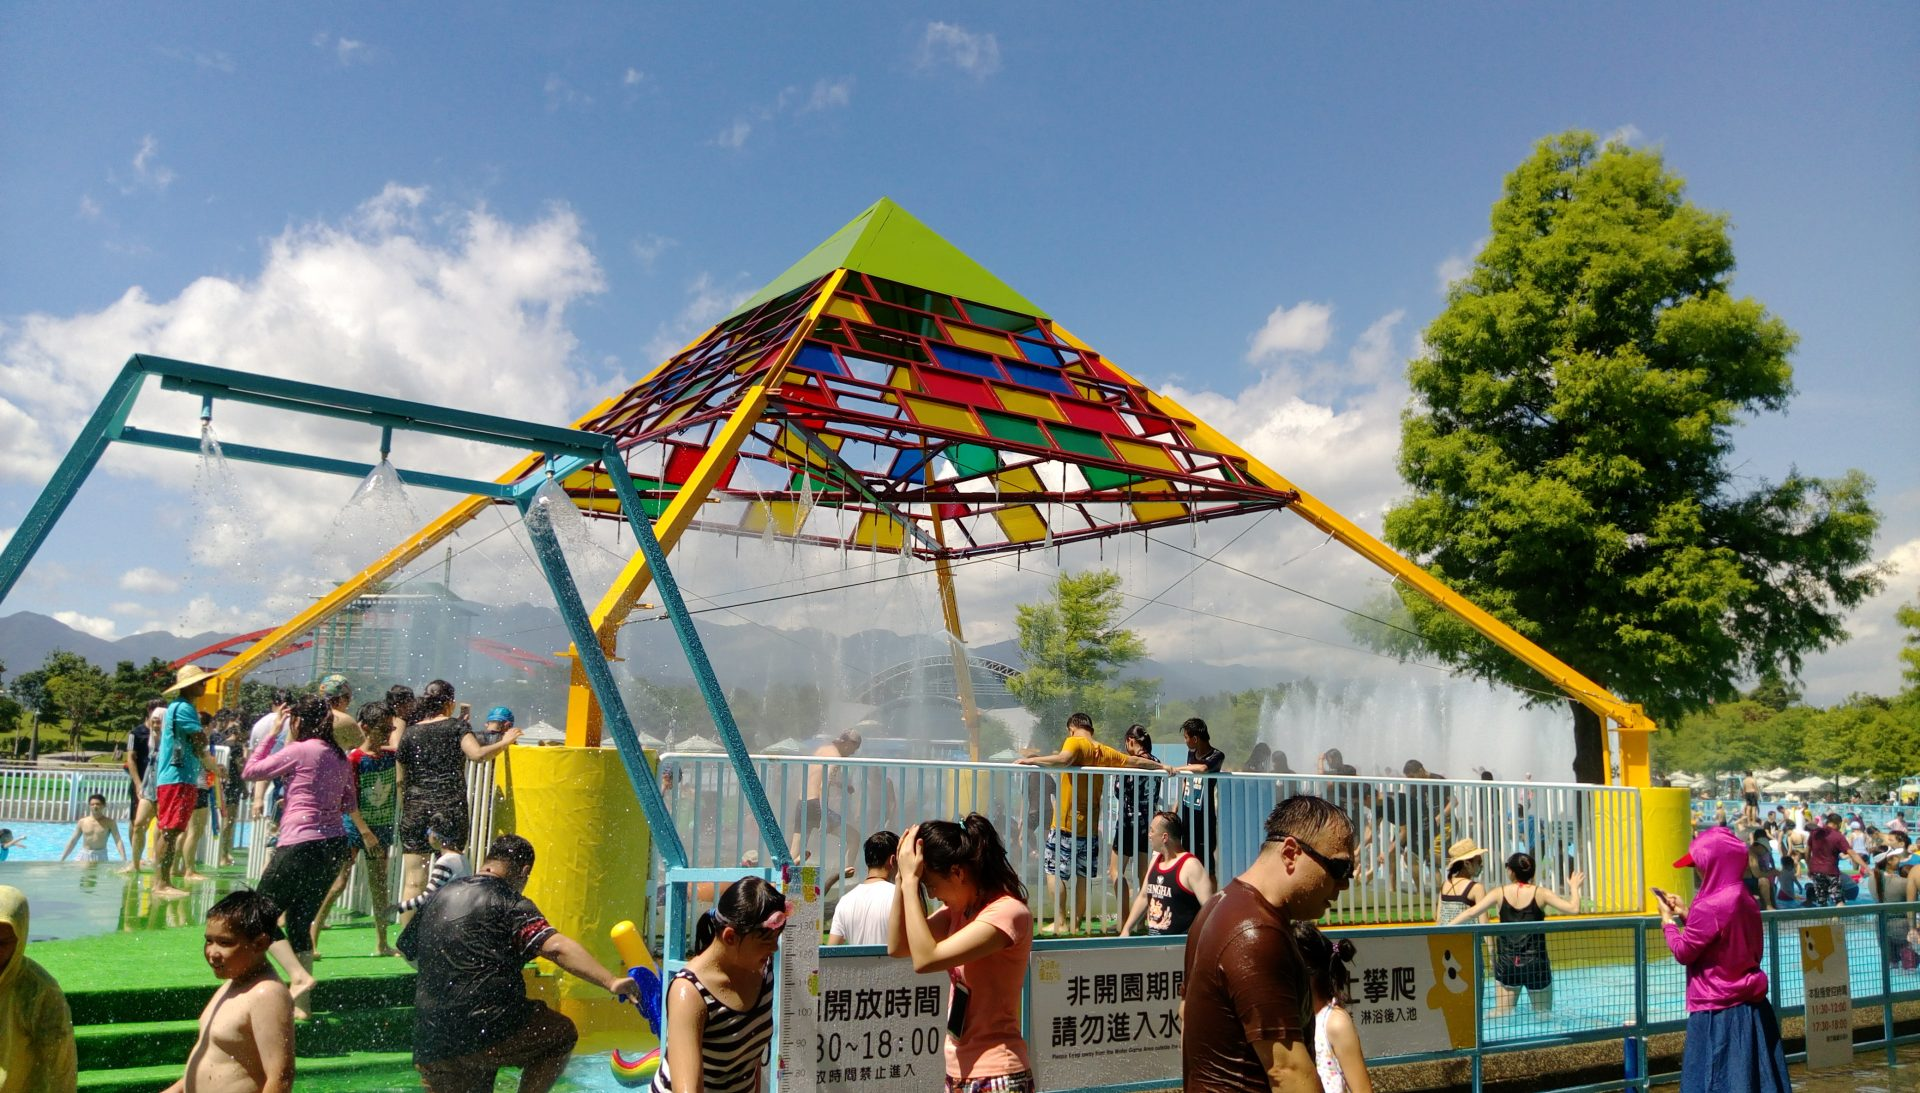 The Water Pyramid at Yilan International Children's Folklore and Folkgame Festival (Image: Juliet Fu/ Vision Times)